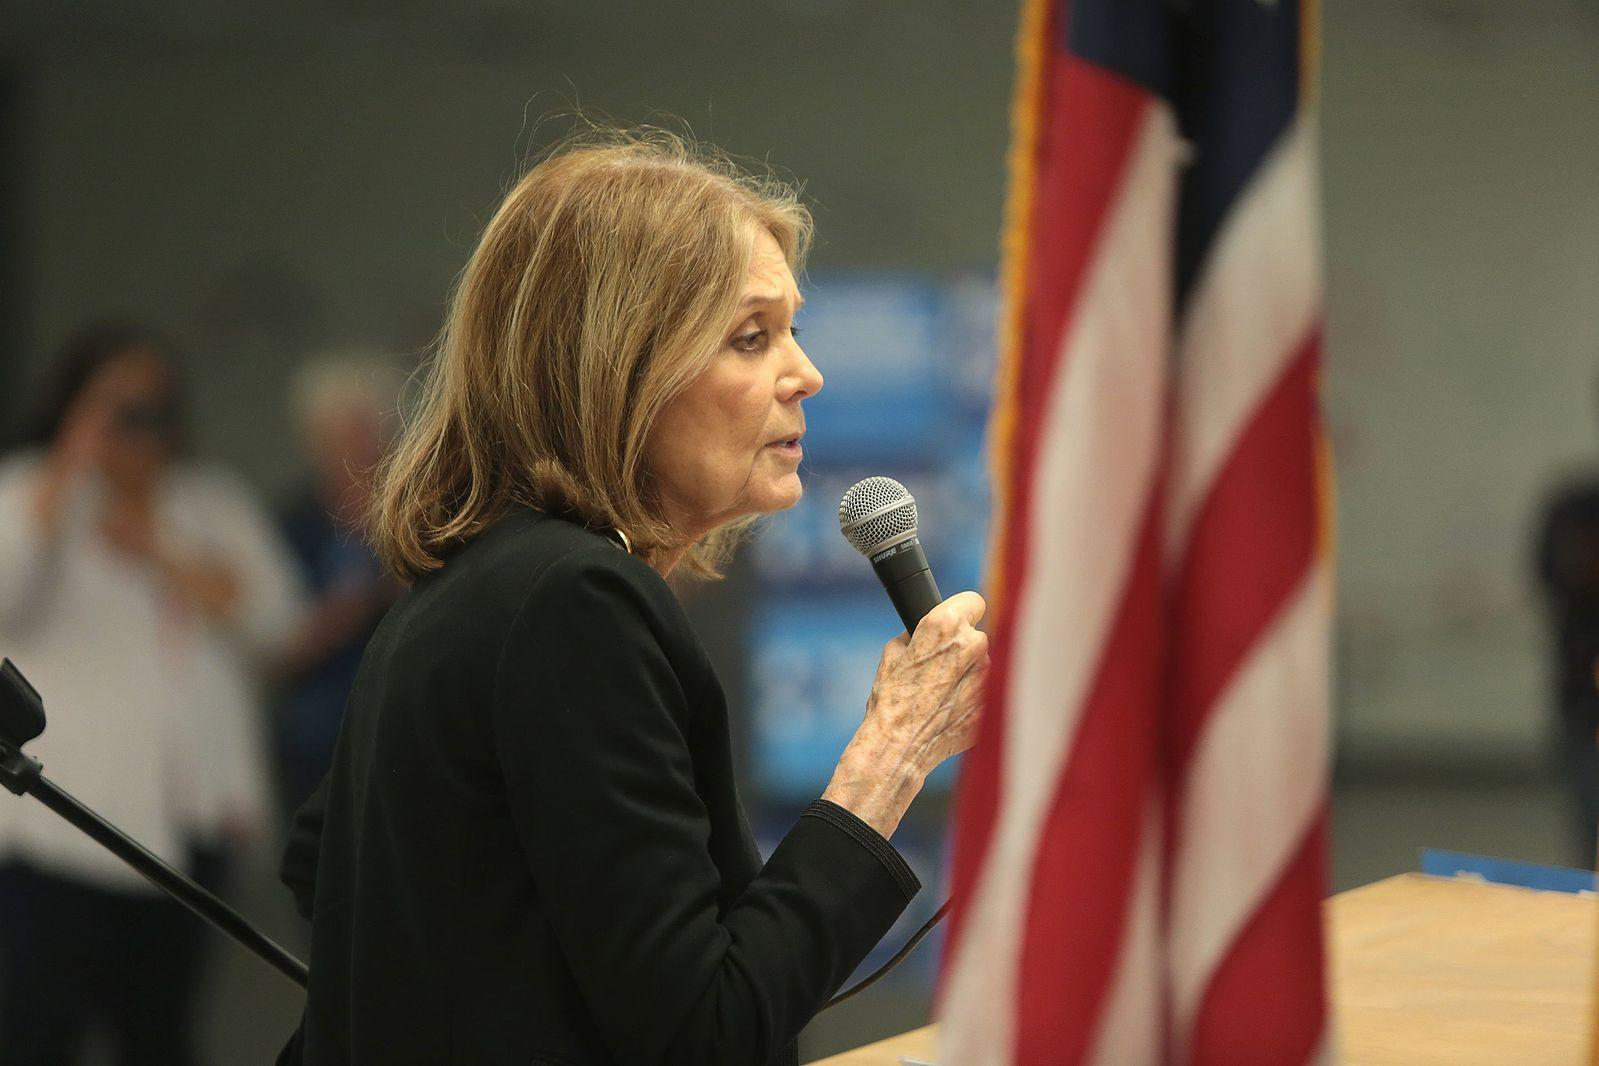 Gloria Steinem speaking in front of an American flag